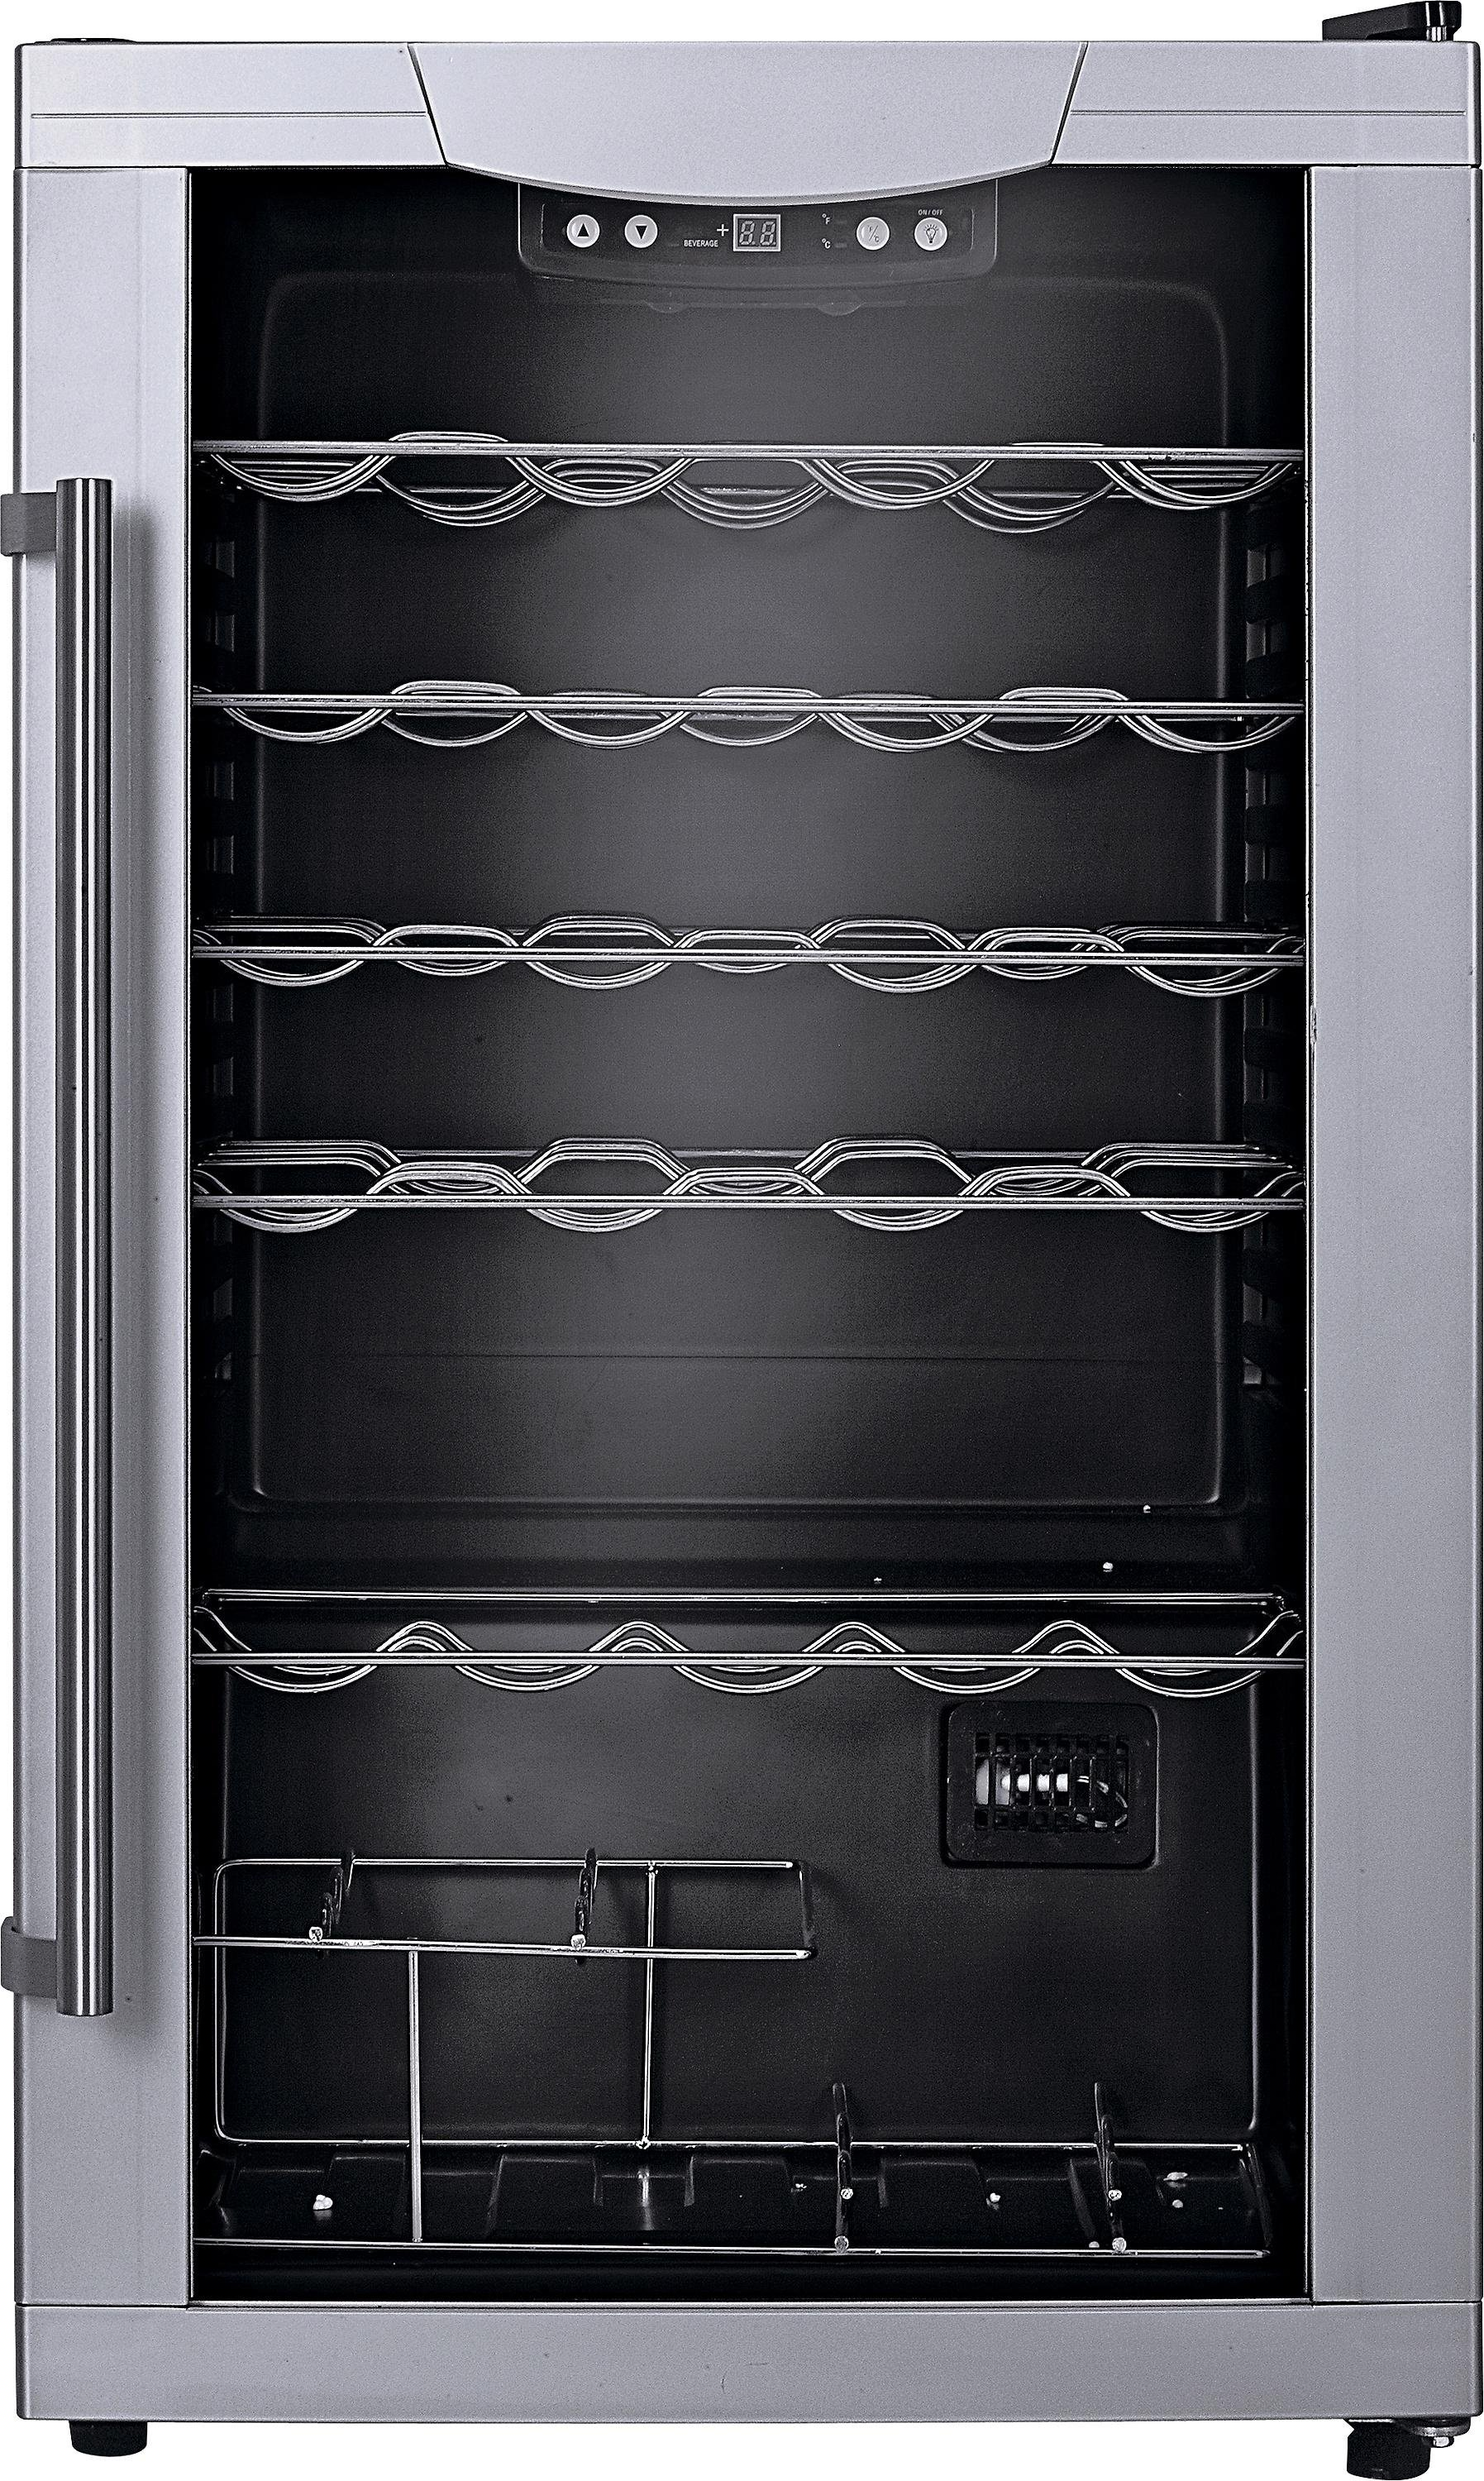 Sale On Wine Cooler Silver Argos Now Available Our